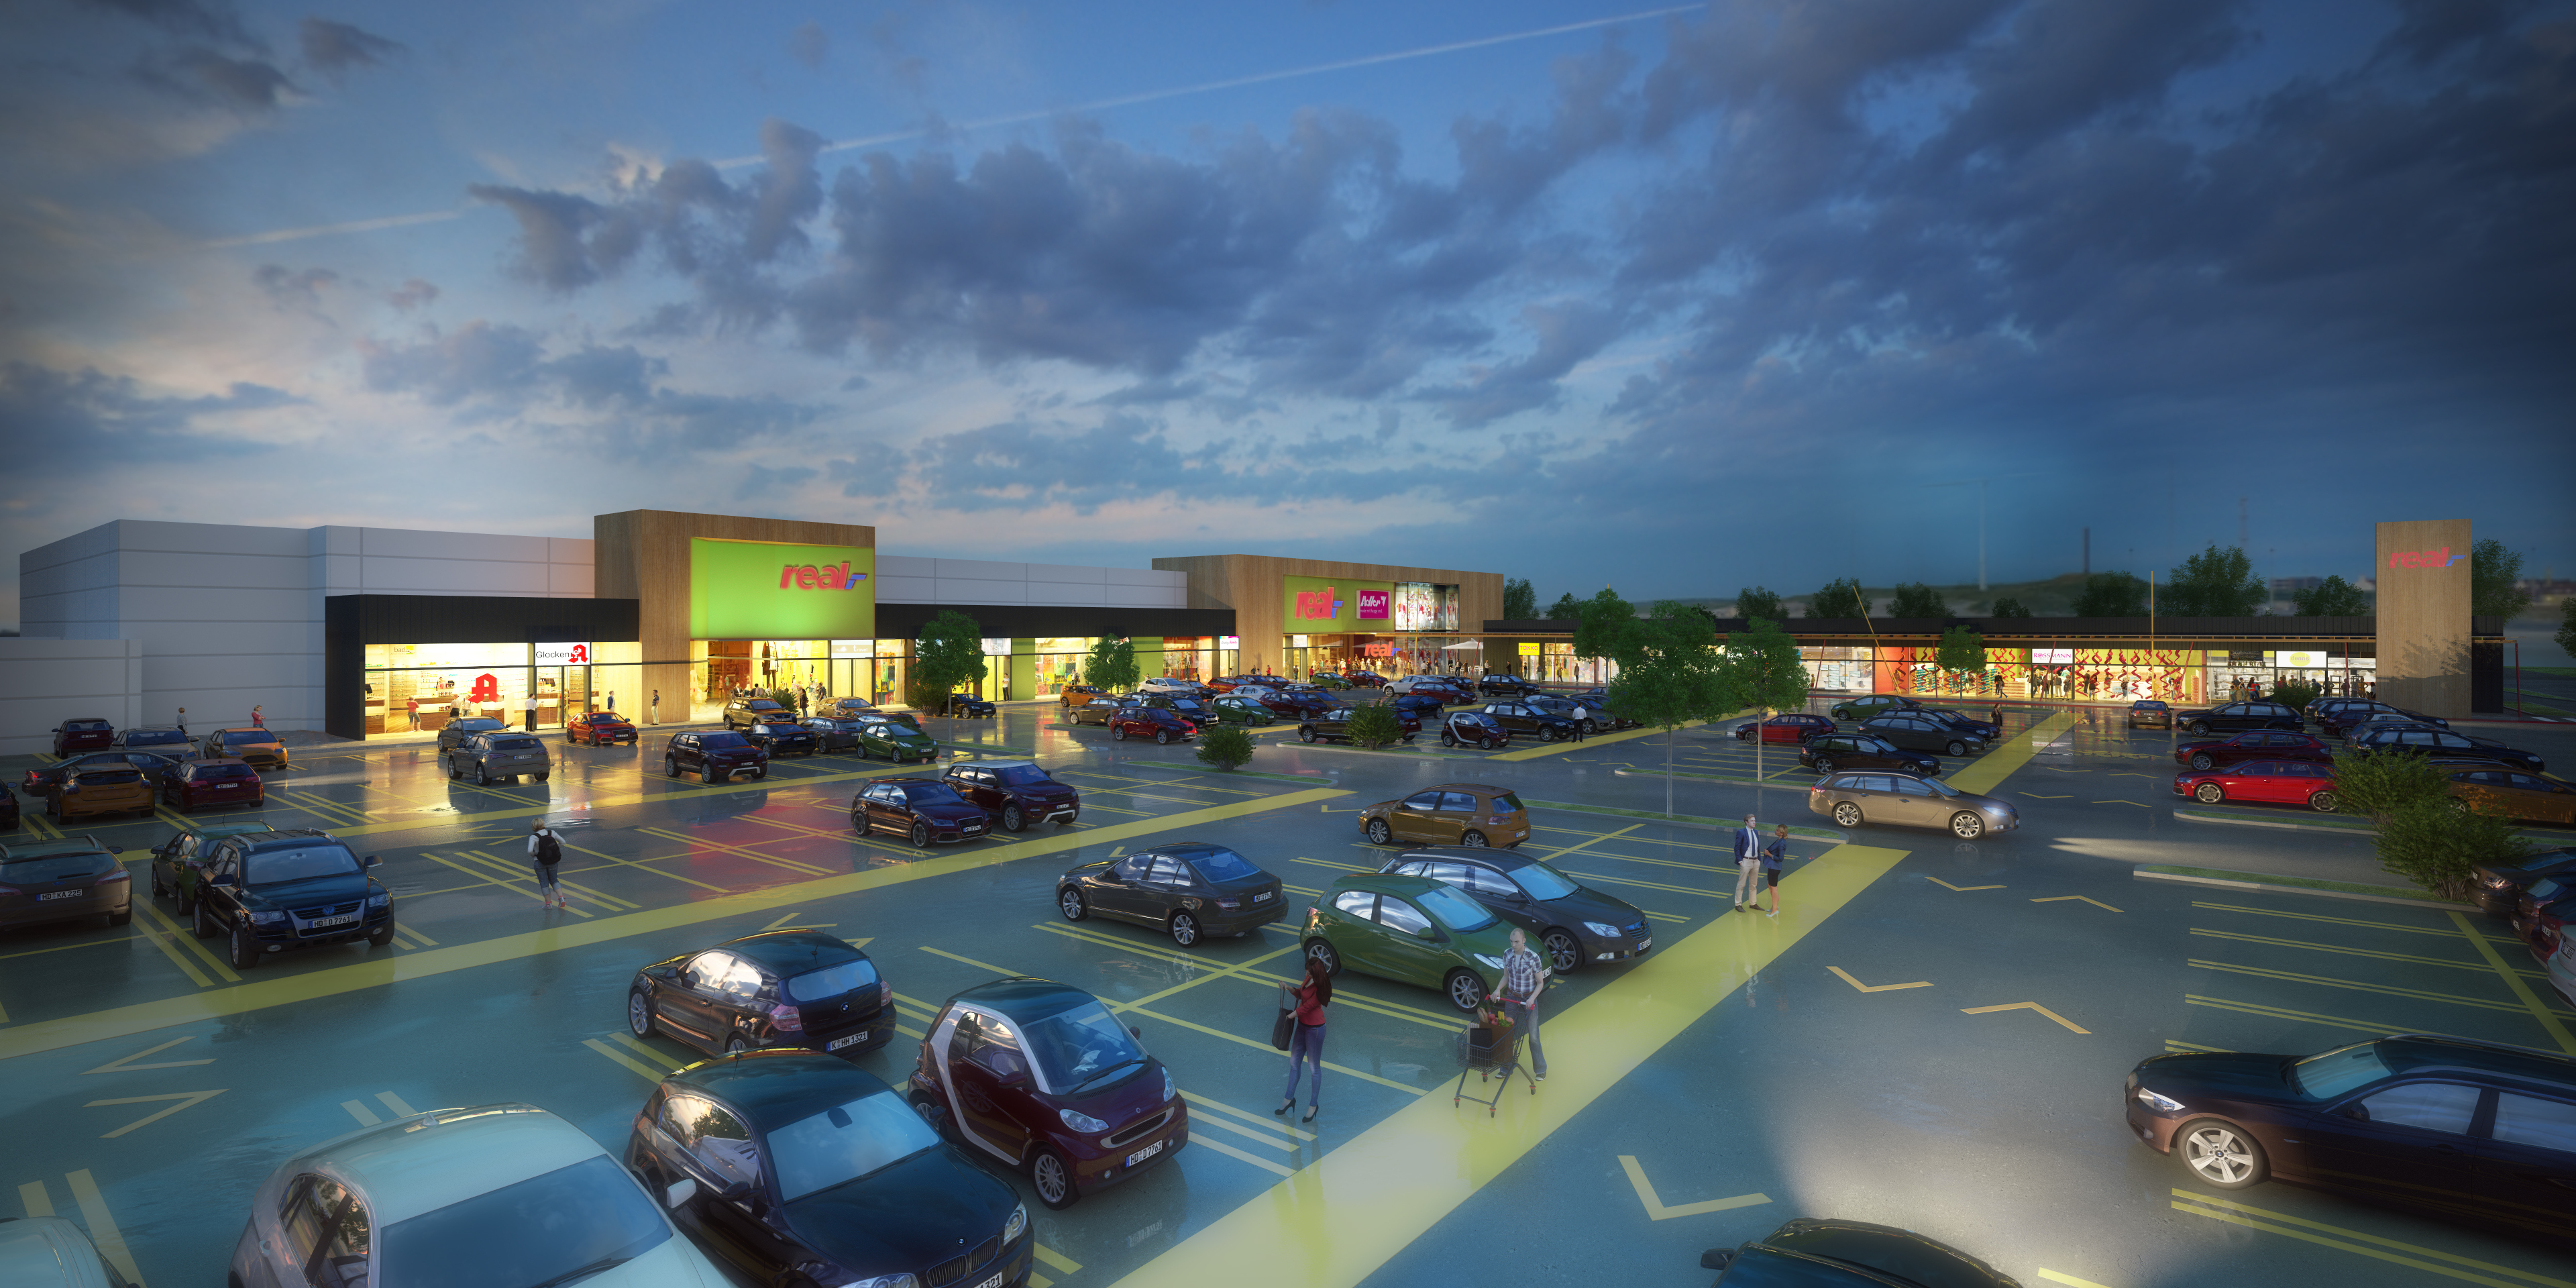 Edingen-Neckarhausen: Real becomes retail park